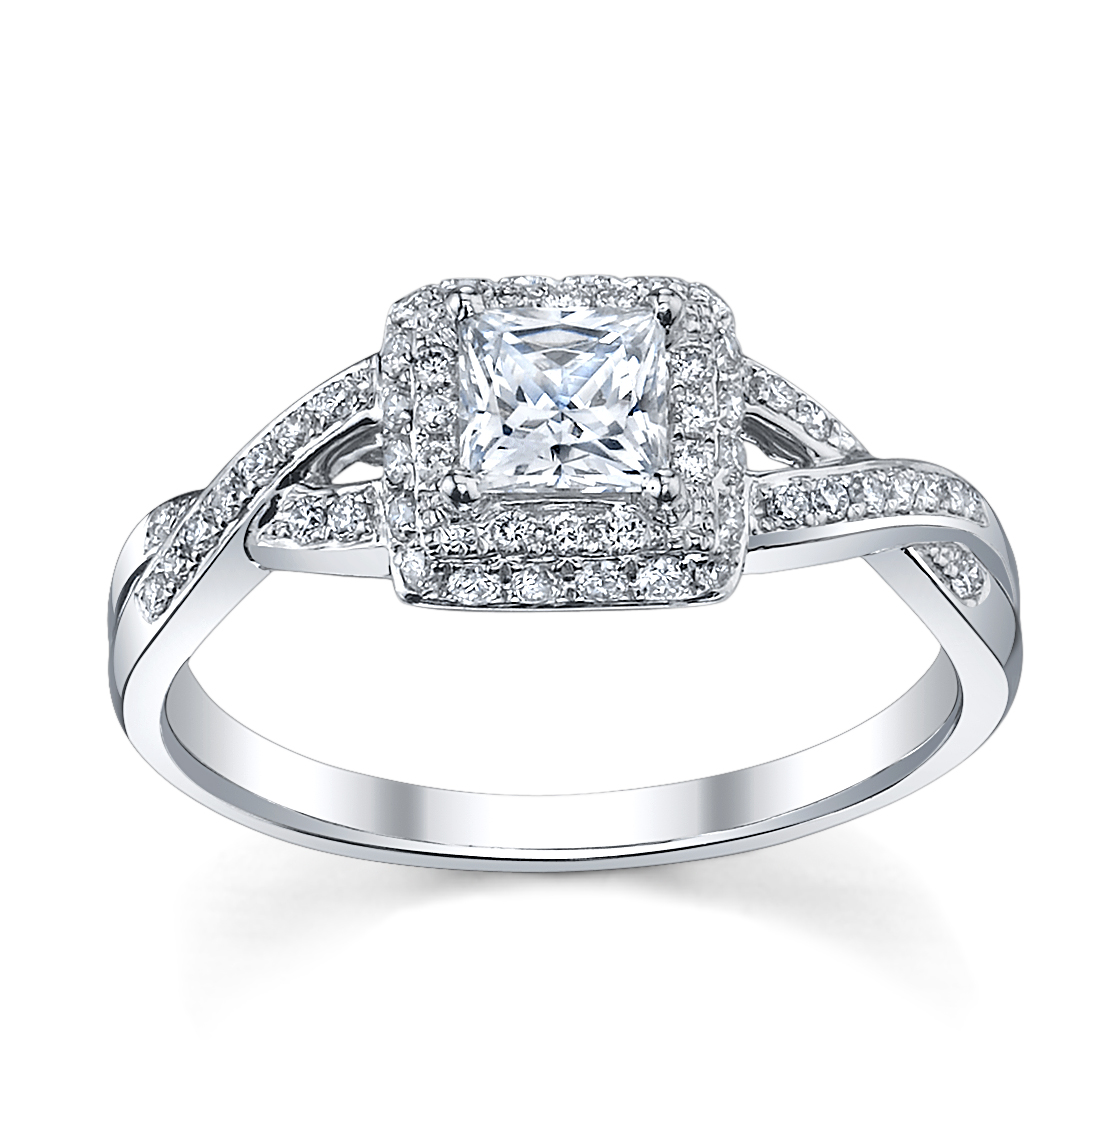 6 princess cut engagement rings she'll love - robbins brothers blog